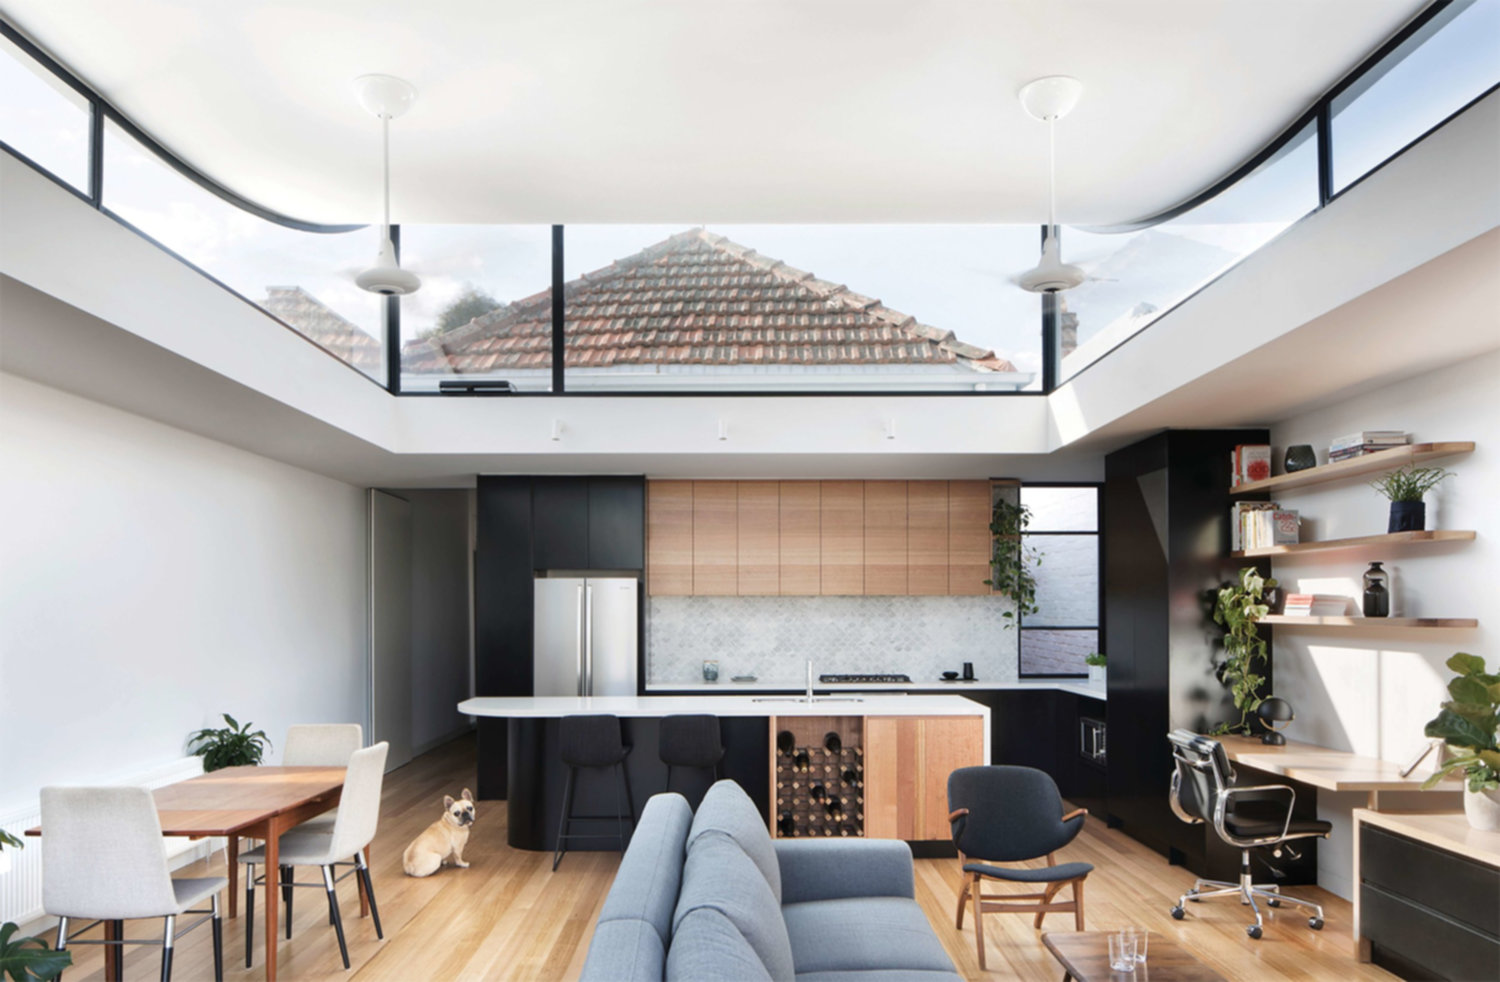 Extension d'une maison à Melbourne par Ben Callery architects